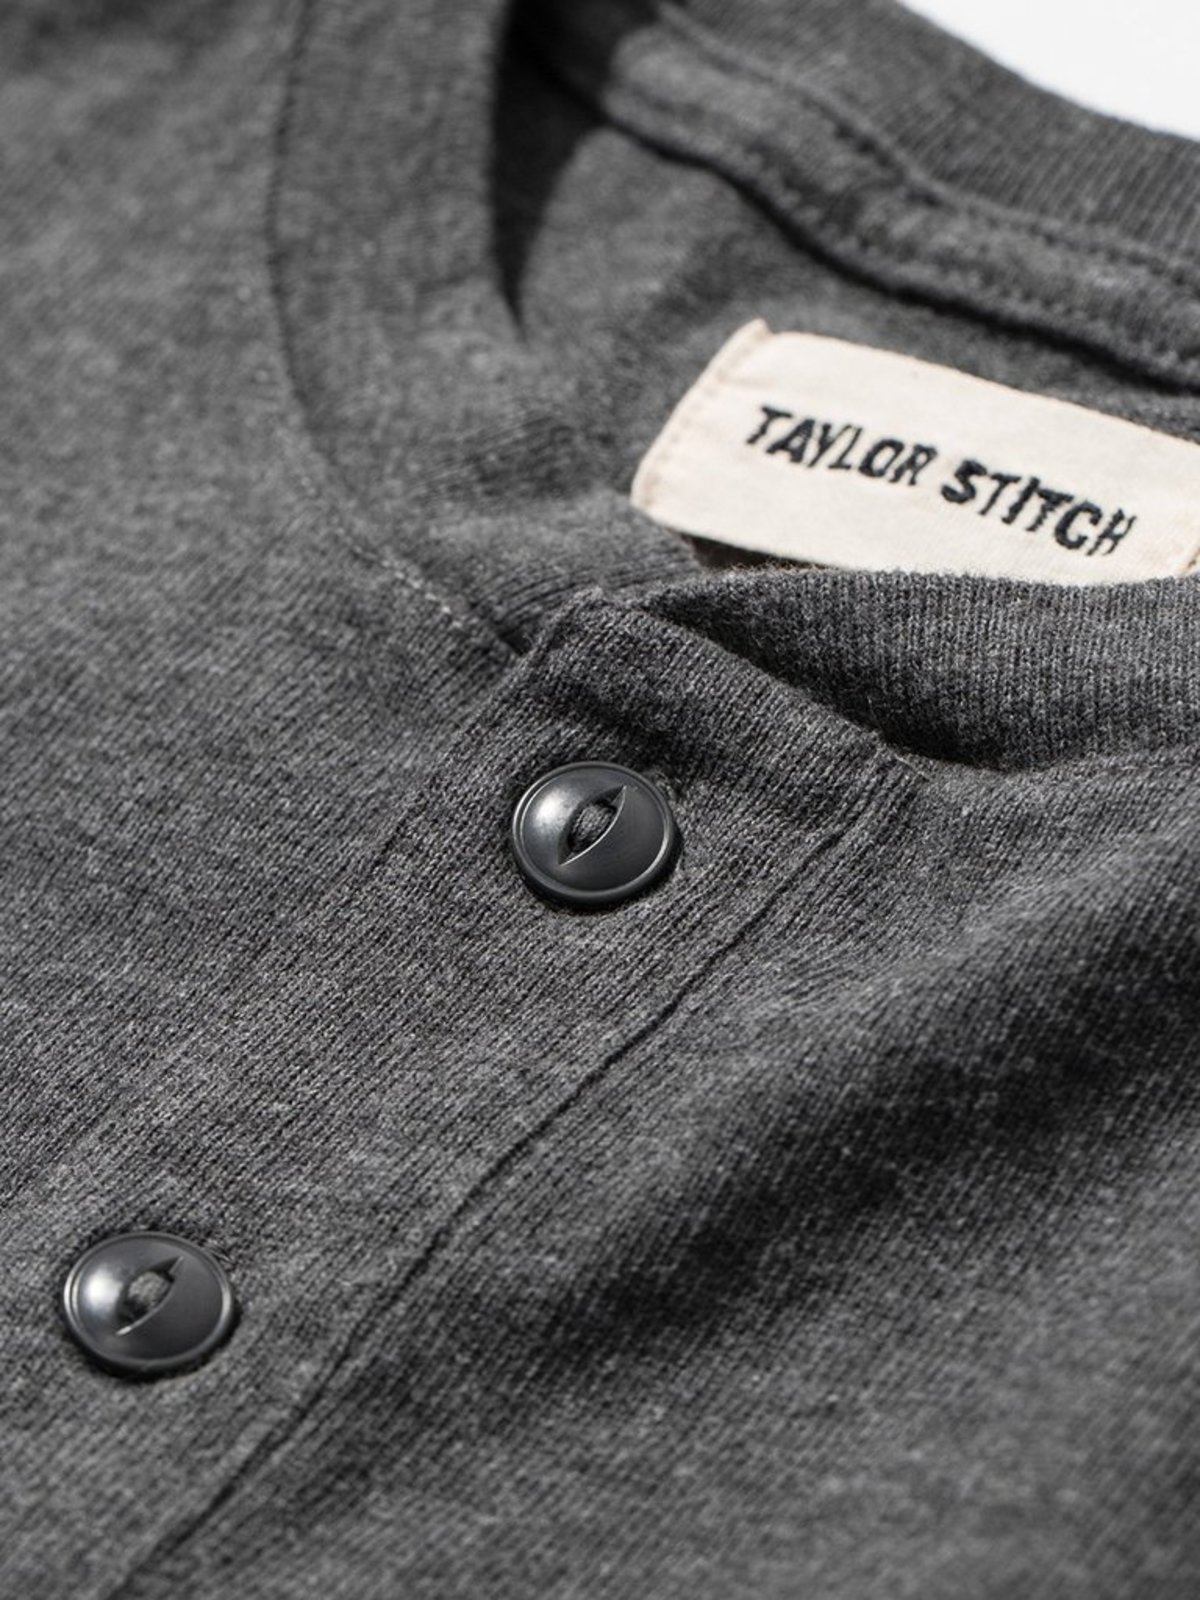 Taylor Stitch Heavy Bag Collection